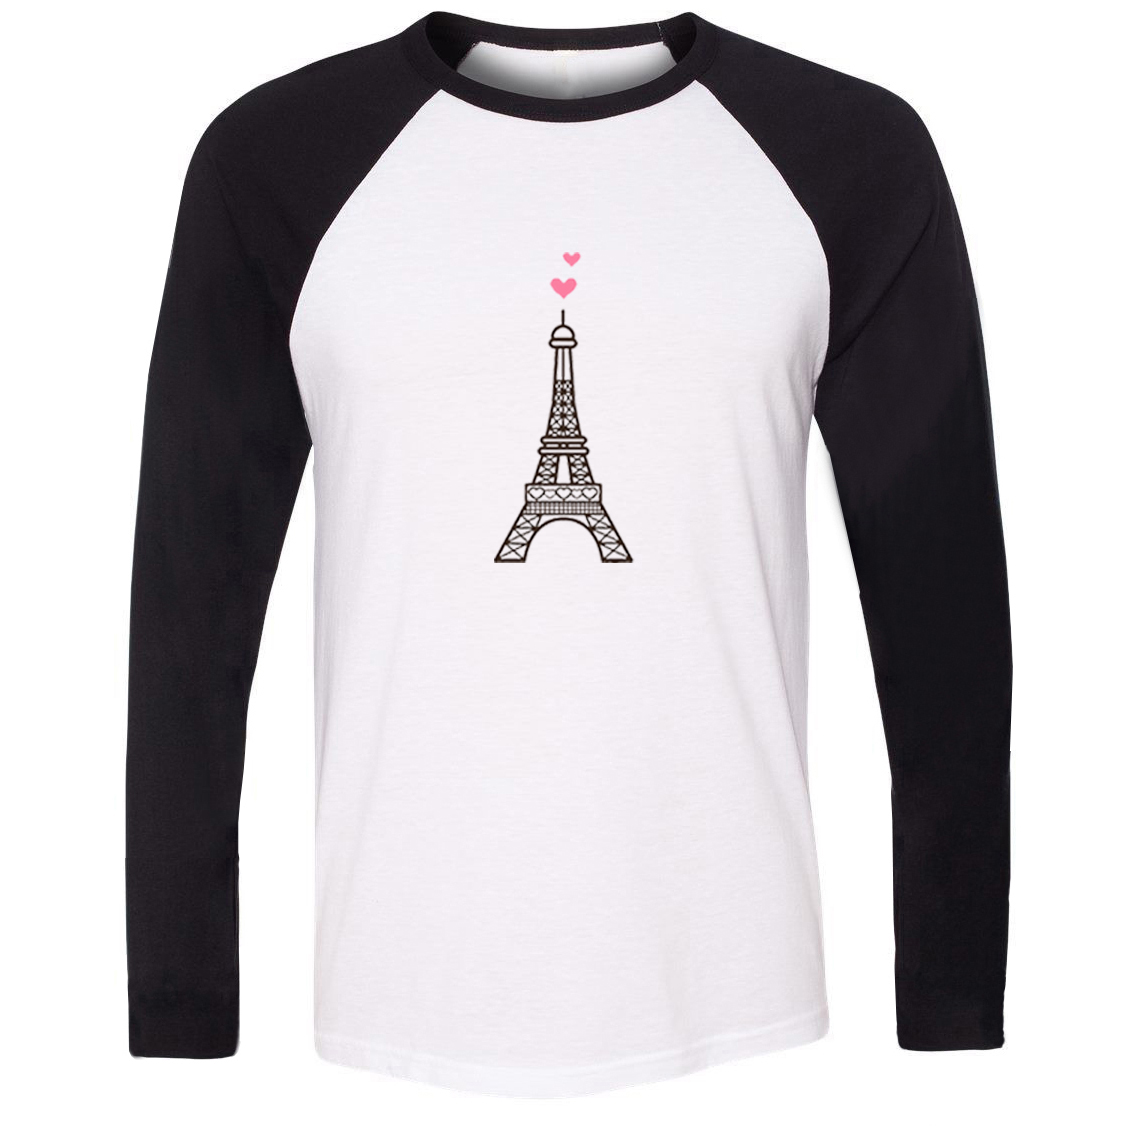 Idzn Fashion The Top Two Pink Love The Eiffel Tower Print T-shirt Fitness Raglan Long Sleeve T Shirt Men Women Christmas Gift Relieving Rheumatism T-shirts